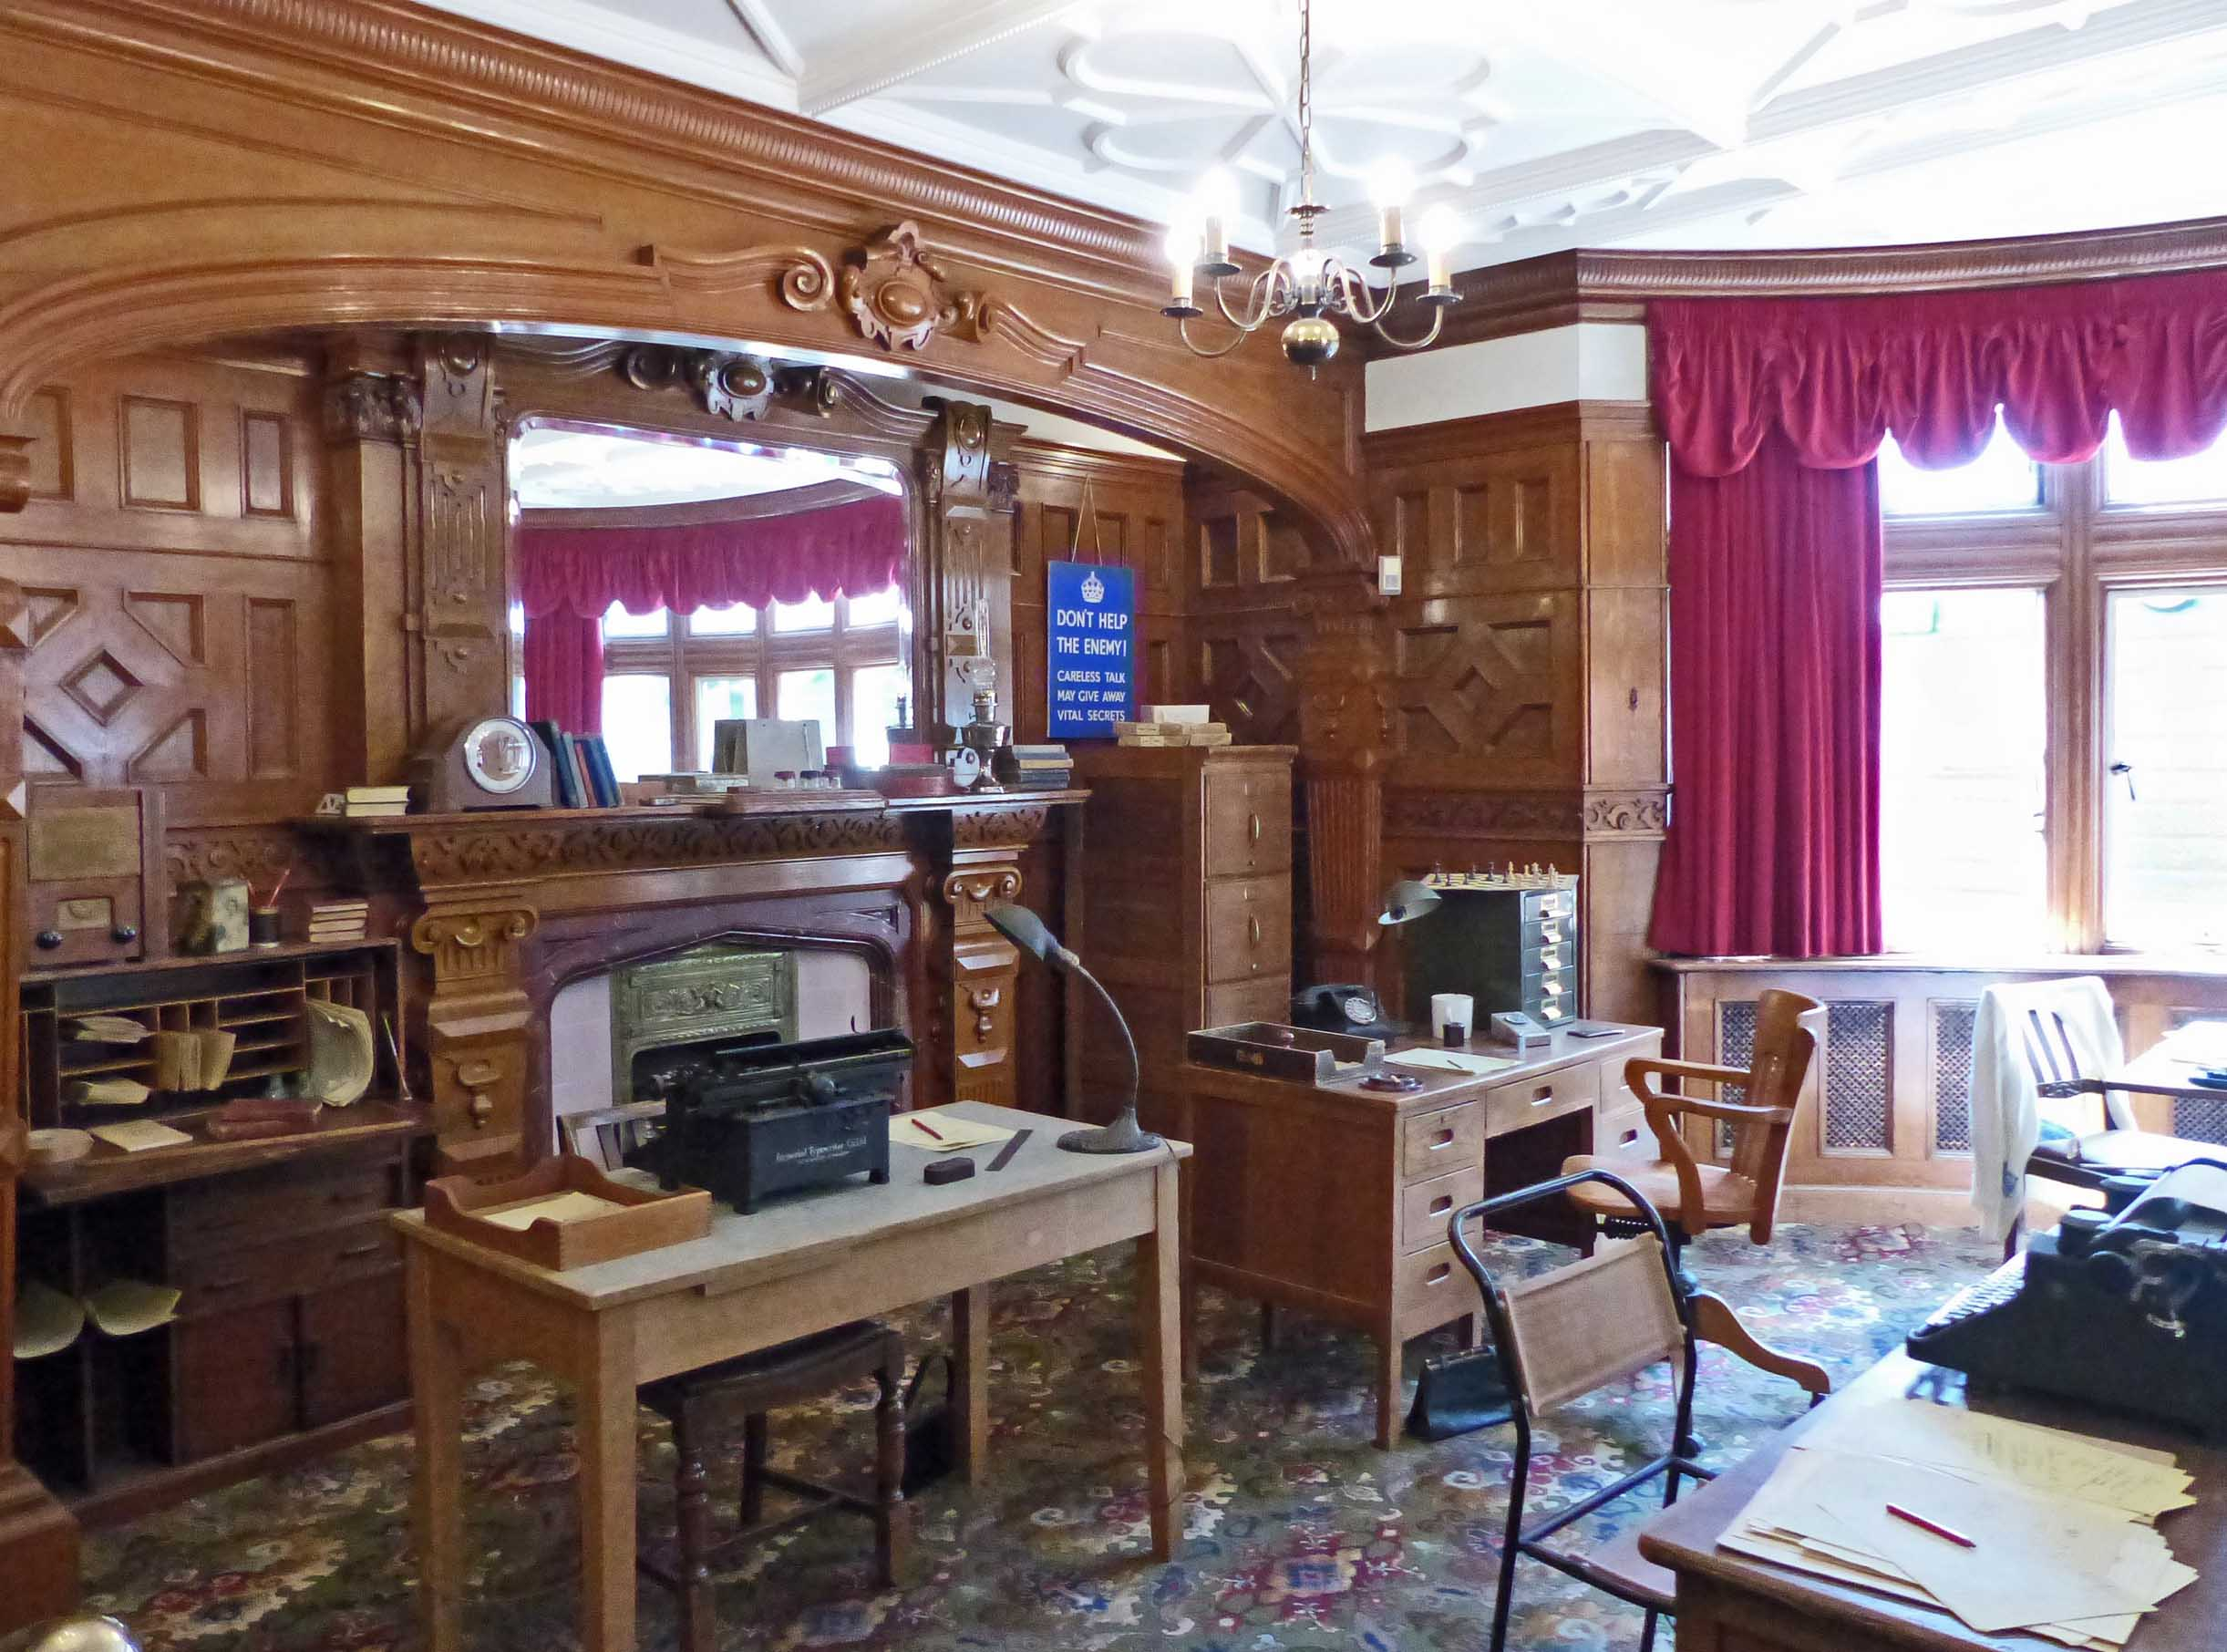 Room decorated as 1940s office